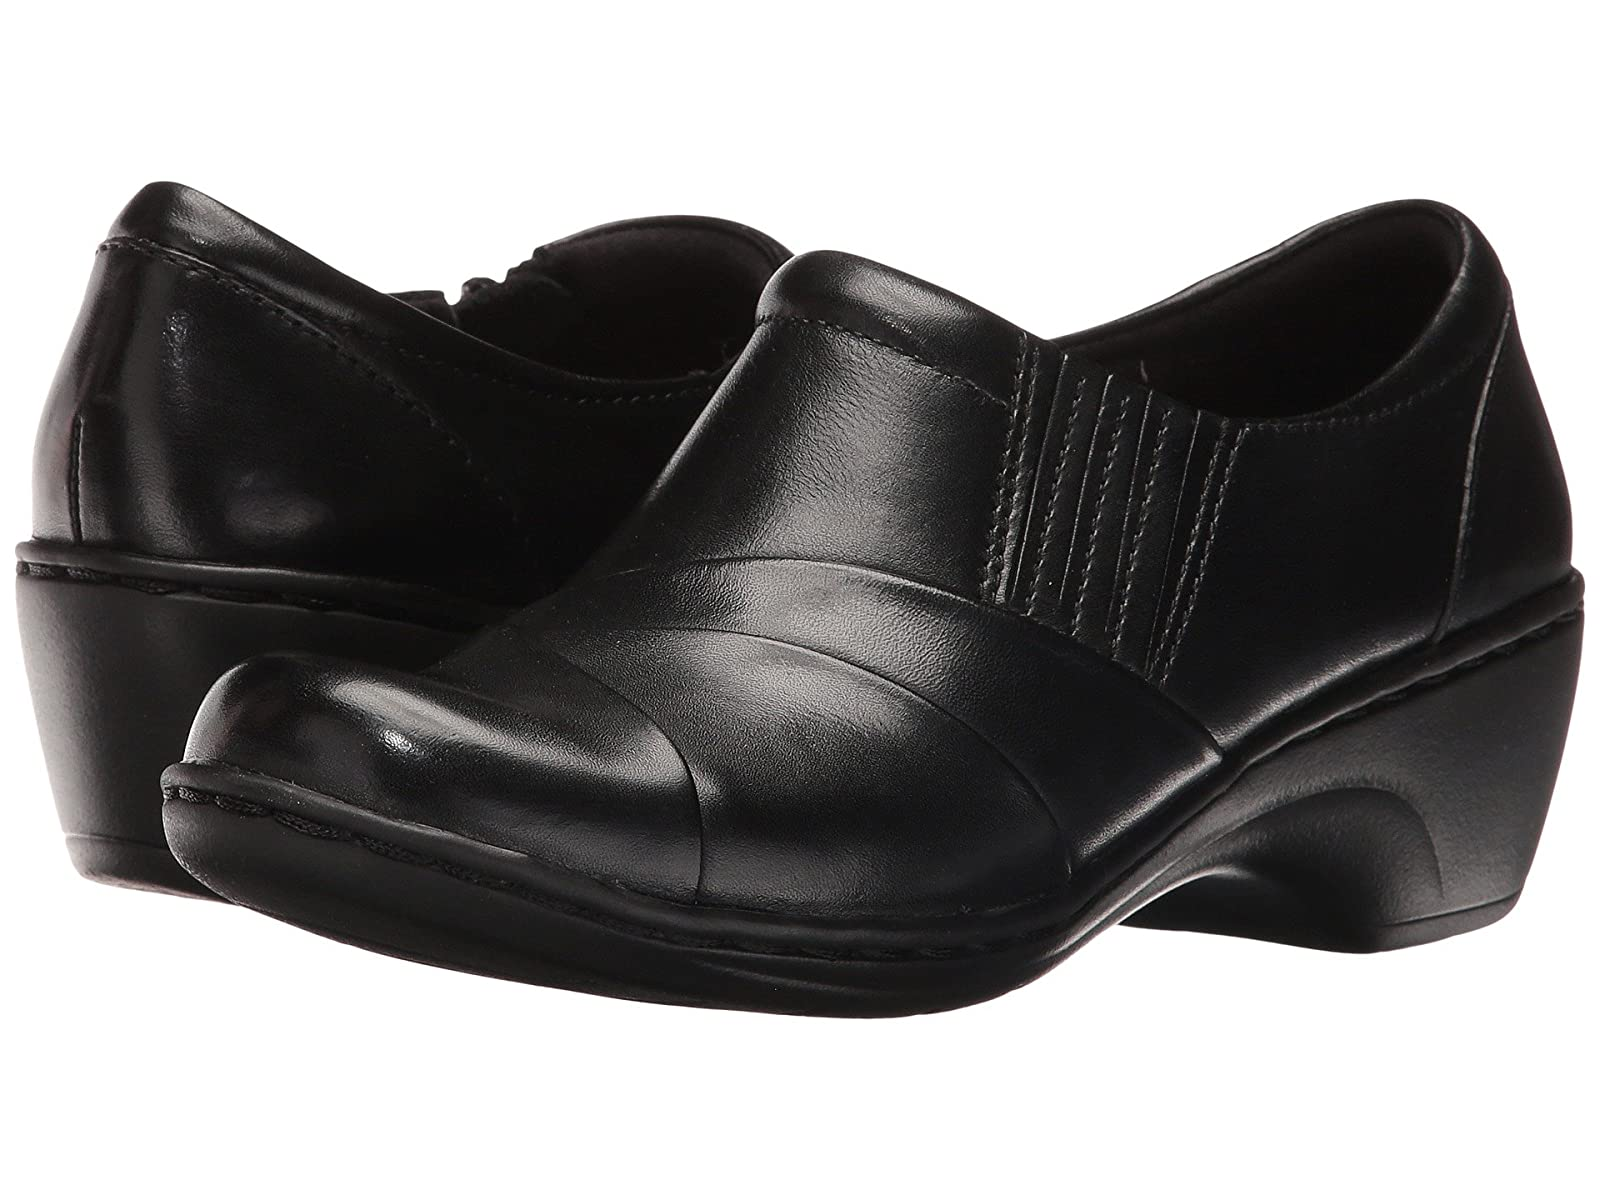 Clarks Channing EssaCheap and distinctive eye-catching shoes